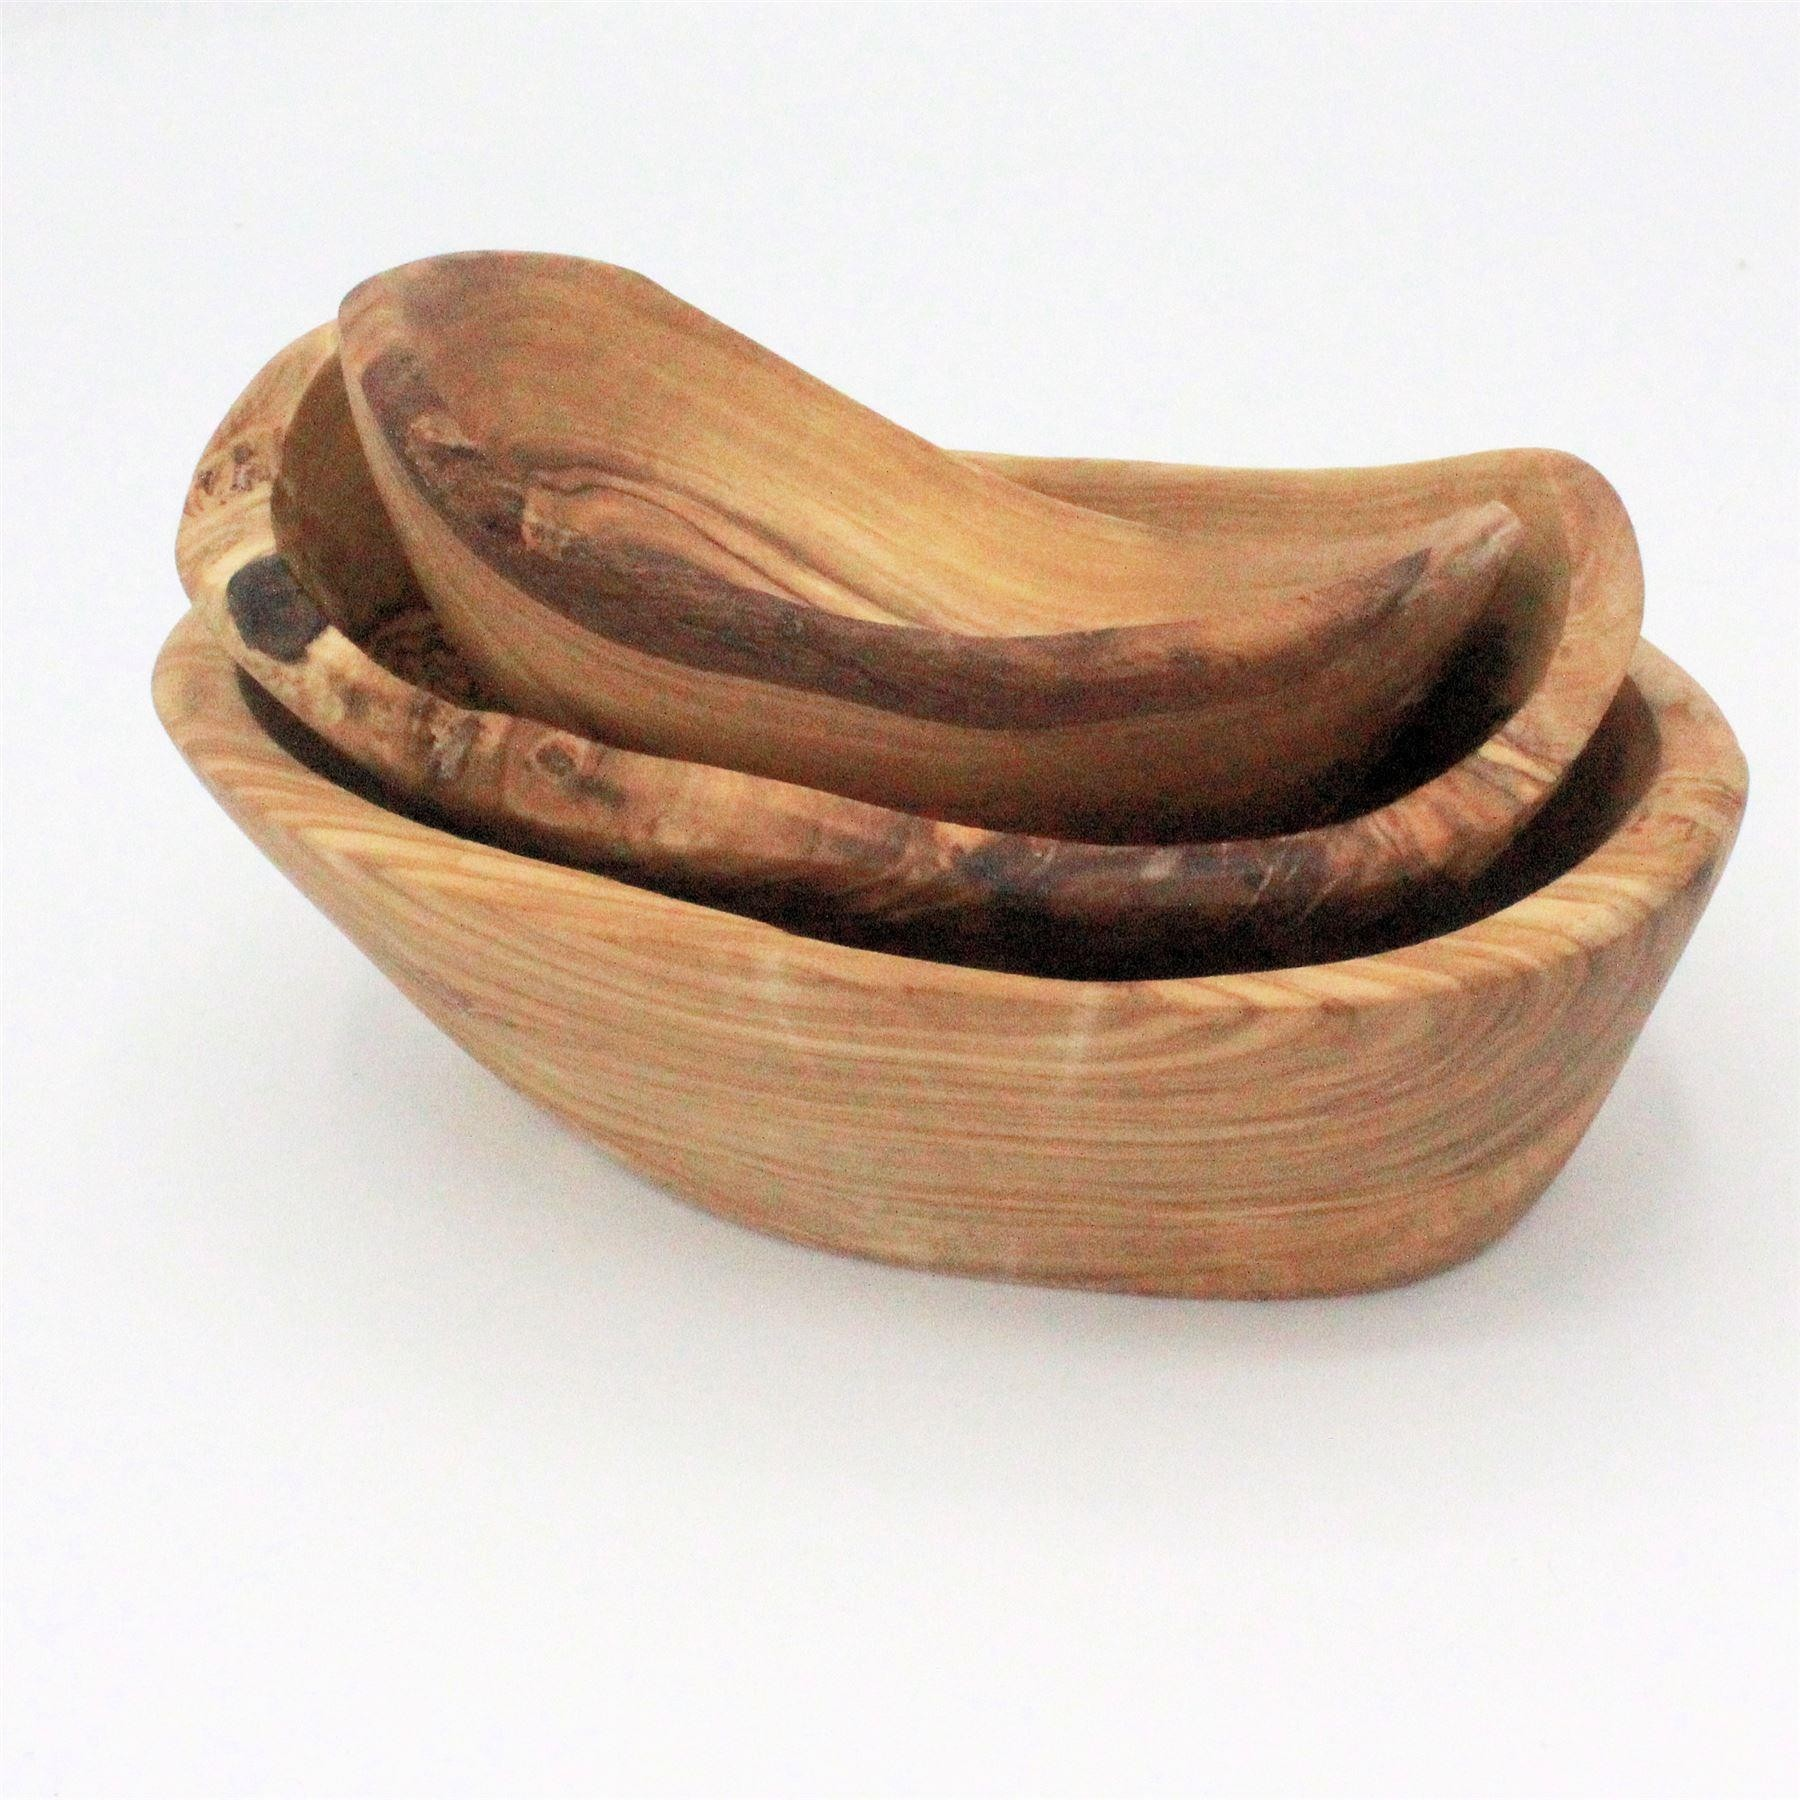 Olive wood rustic dishes (set of 3)